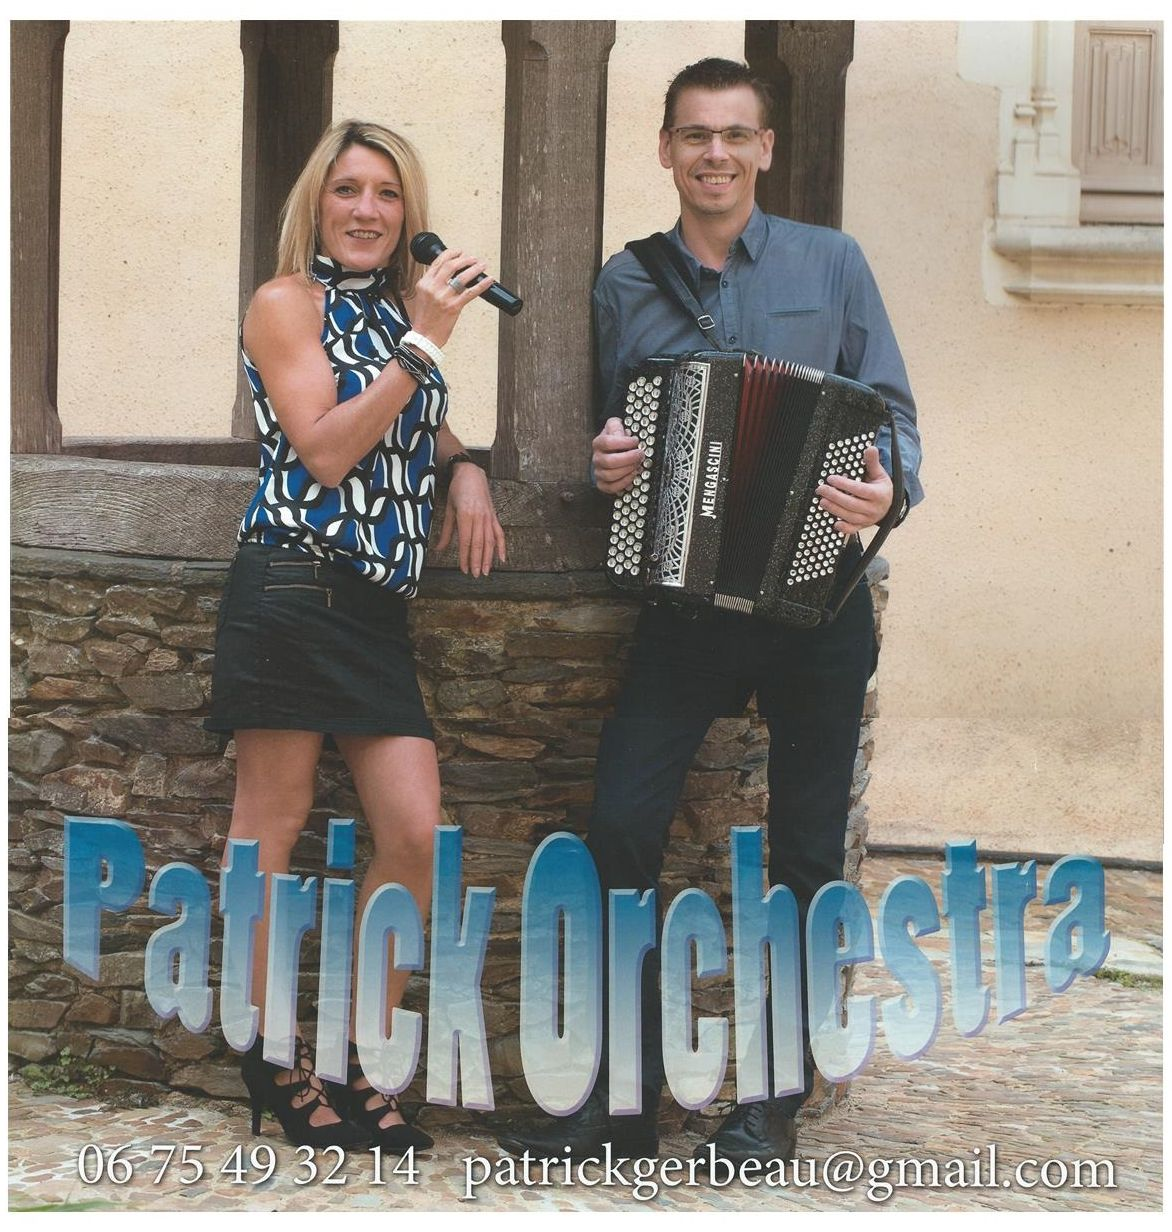 Patrick orchestra 1